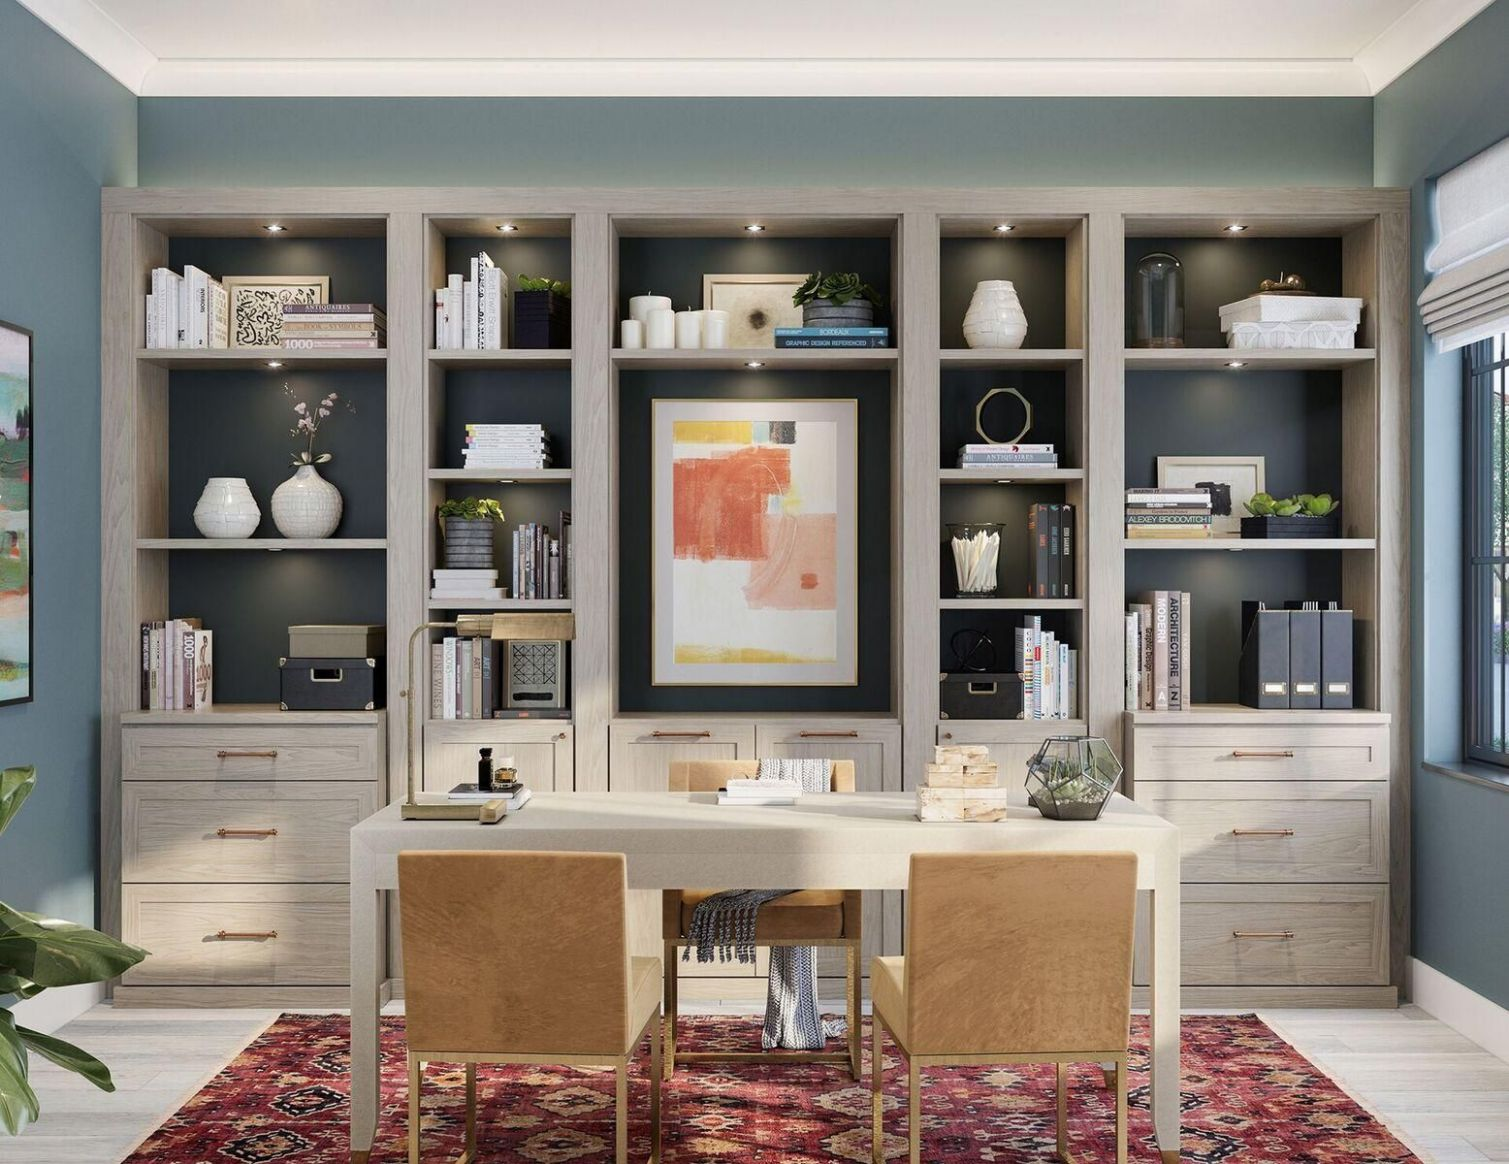 10 Modern Home Office Design Ideas For Inspiration - home office storage ideas uk